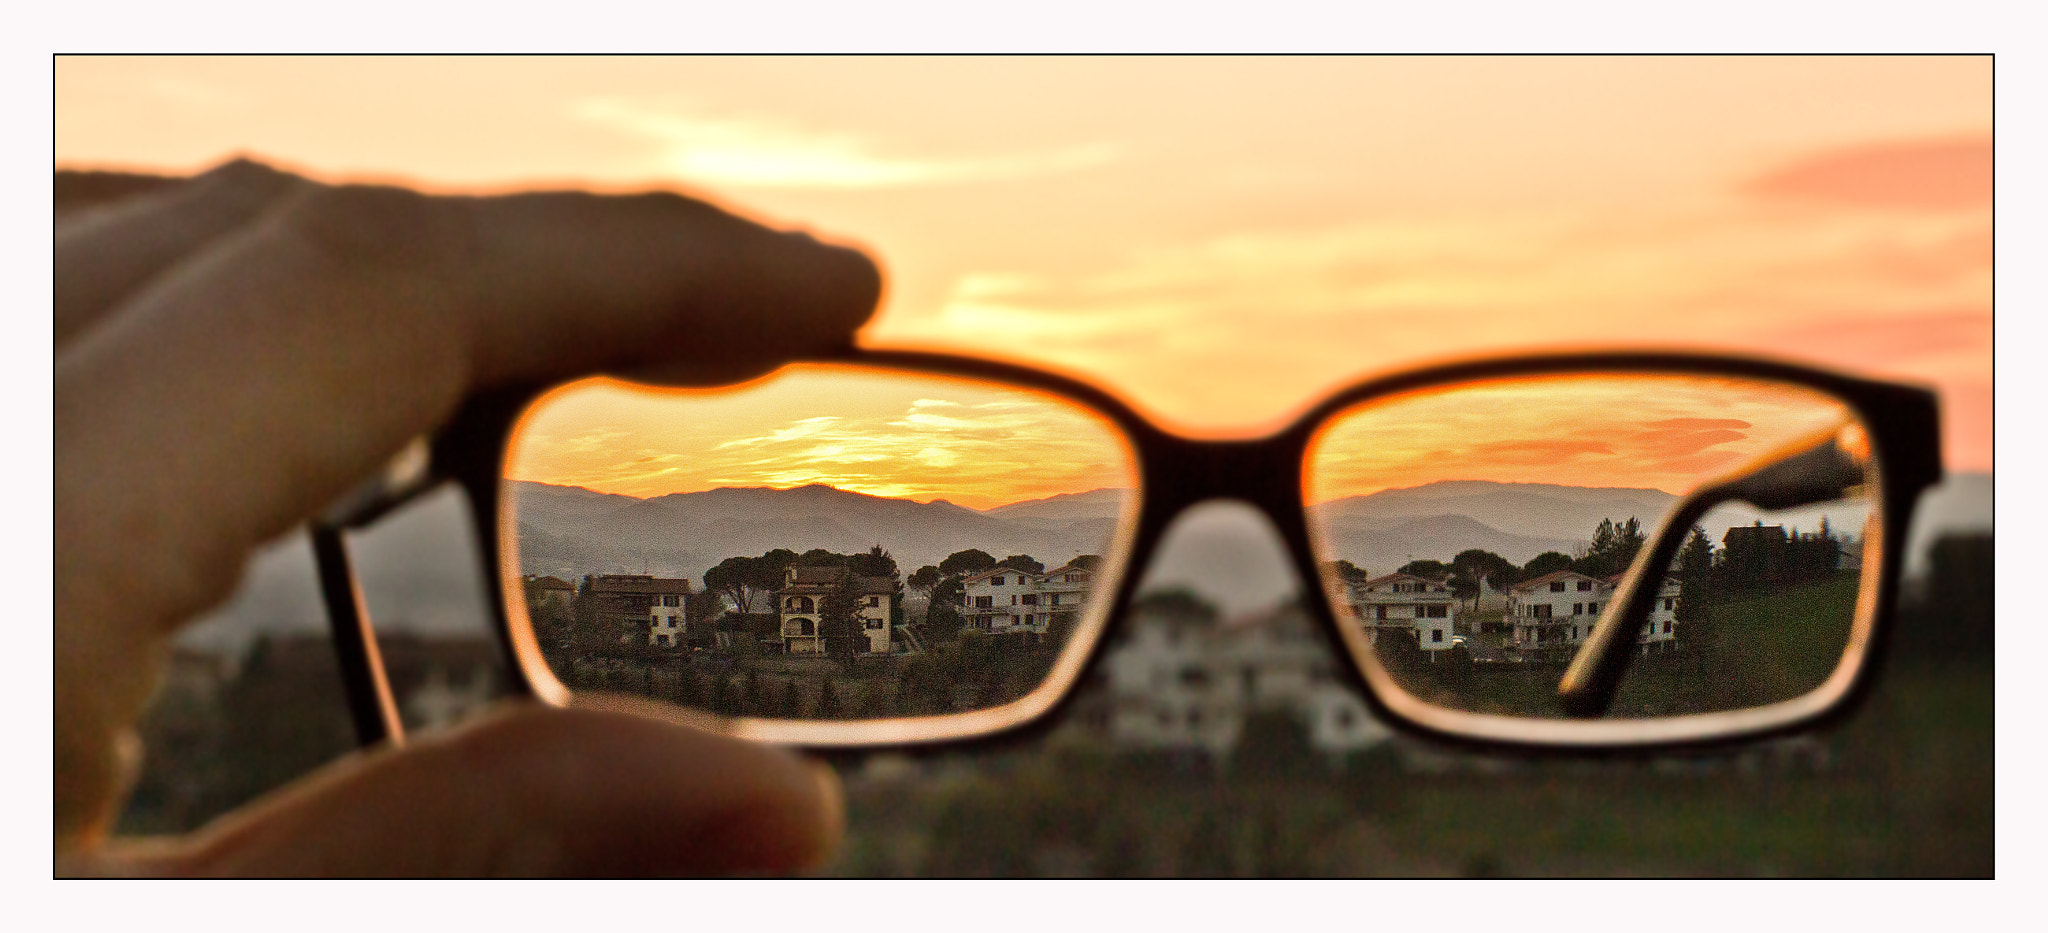 Photograph The world through my glasses by Lorenzo Banchi on 500px